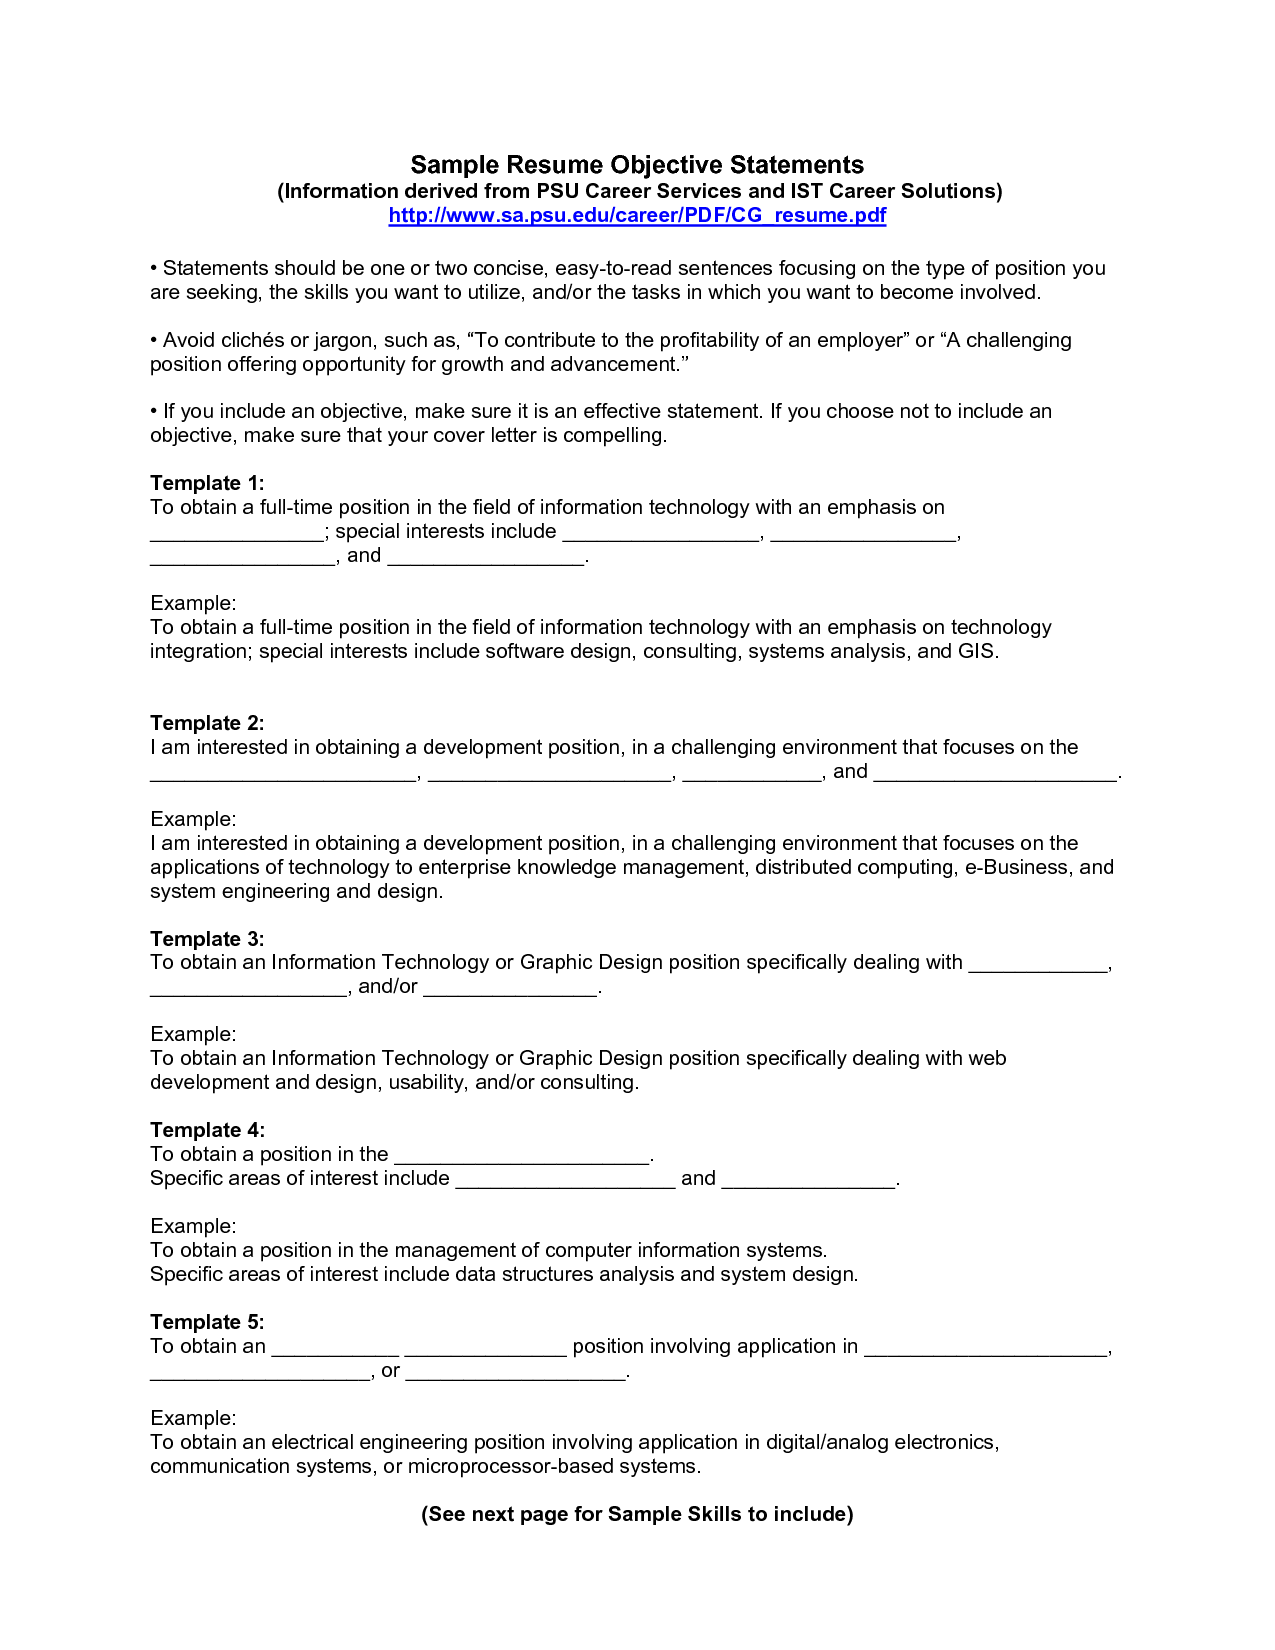 Controller Resume Objective Examples